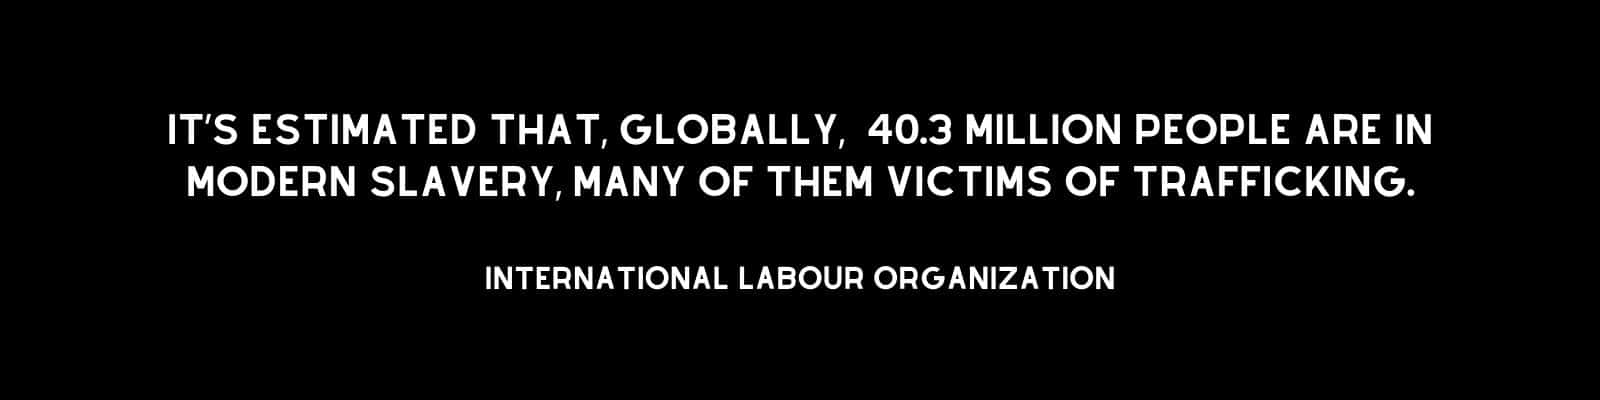 """It's estimated that 40.3 million people are in modern slavery, many of them victims of trafficking. International Labour Organization"""